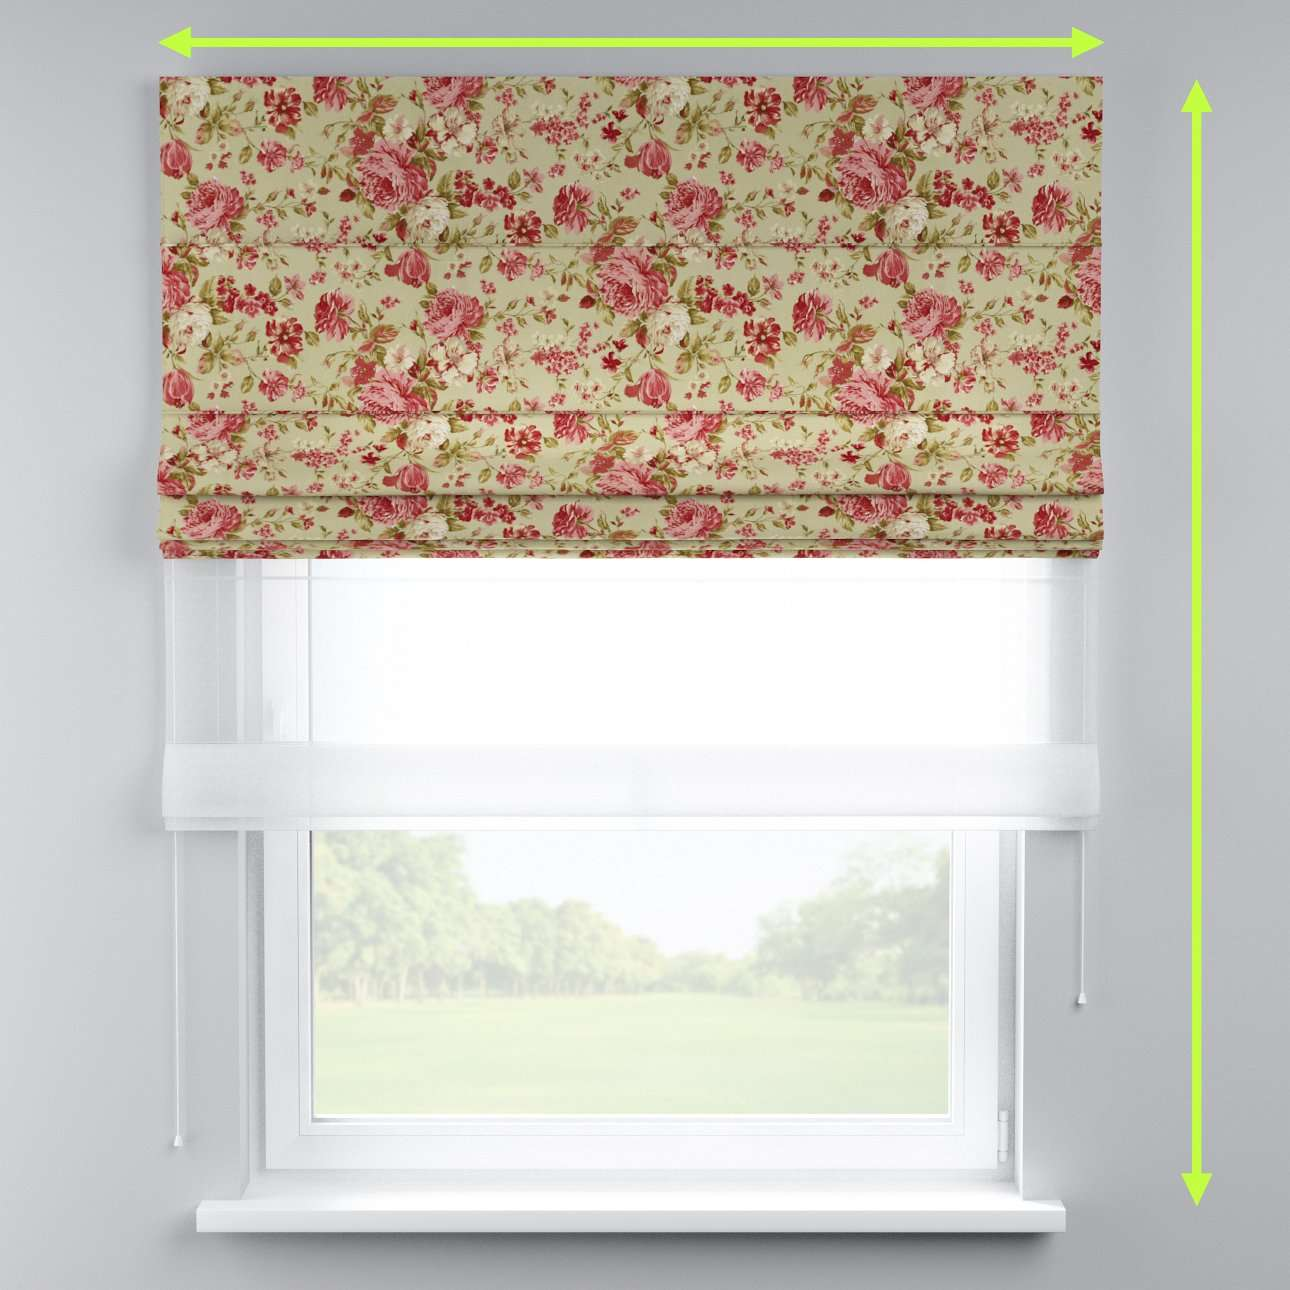 Voile and fabric roman blind (DUO II) in collection Flowers, fabric: 311-06